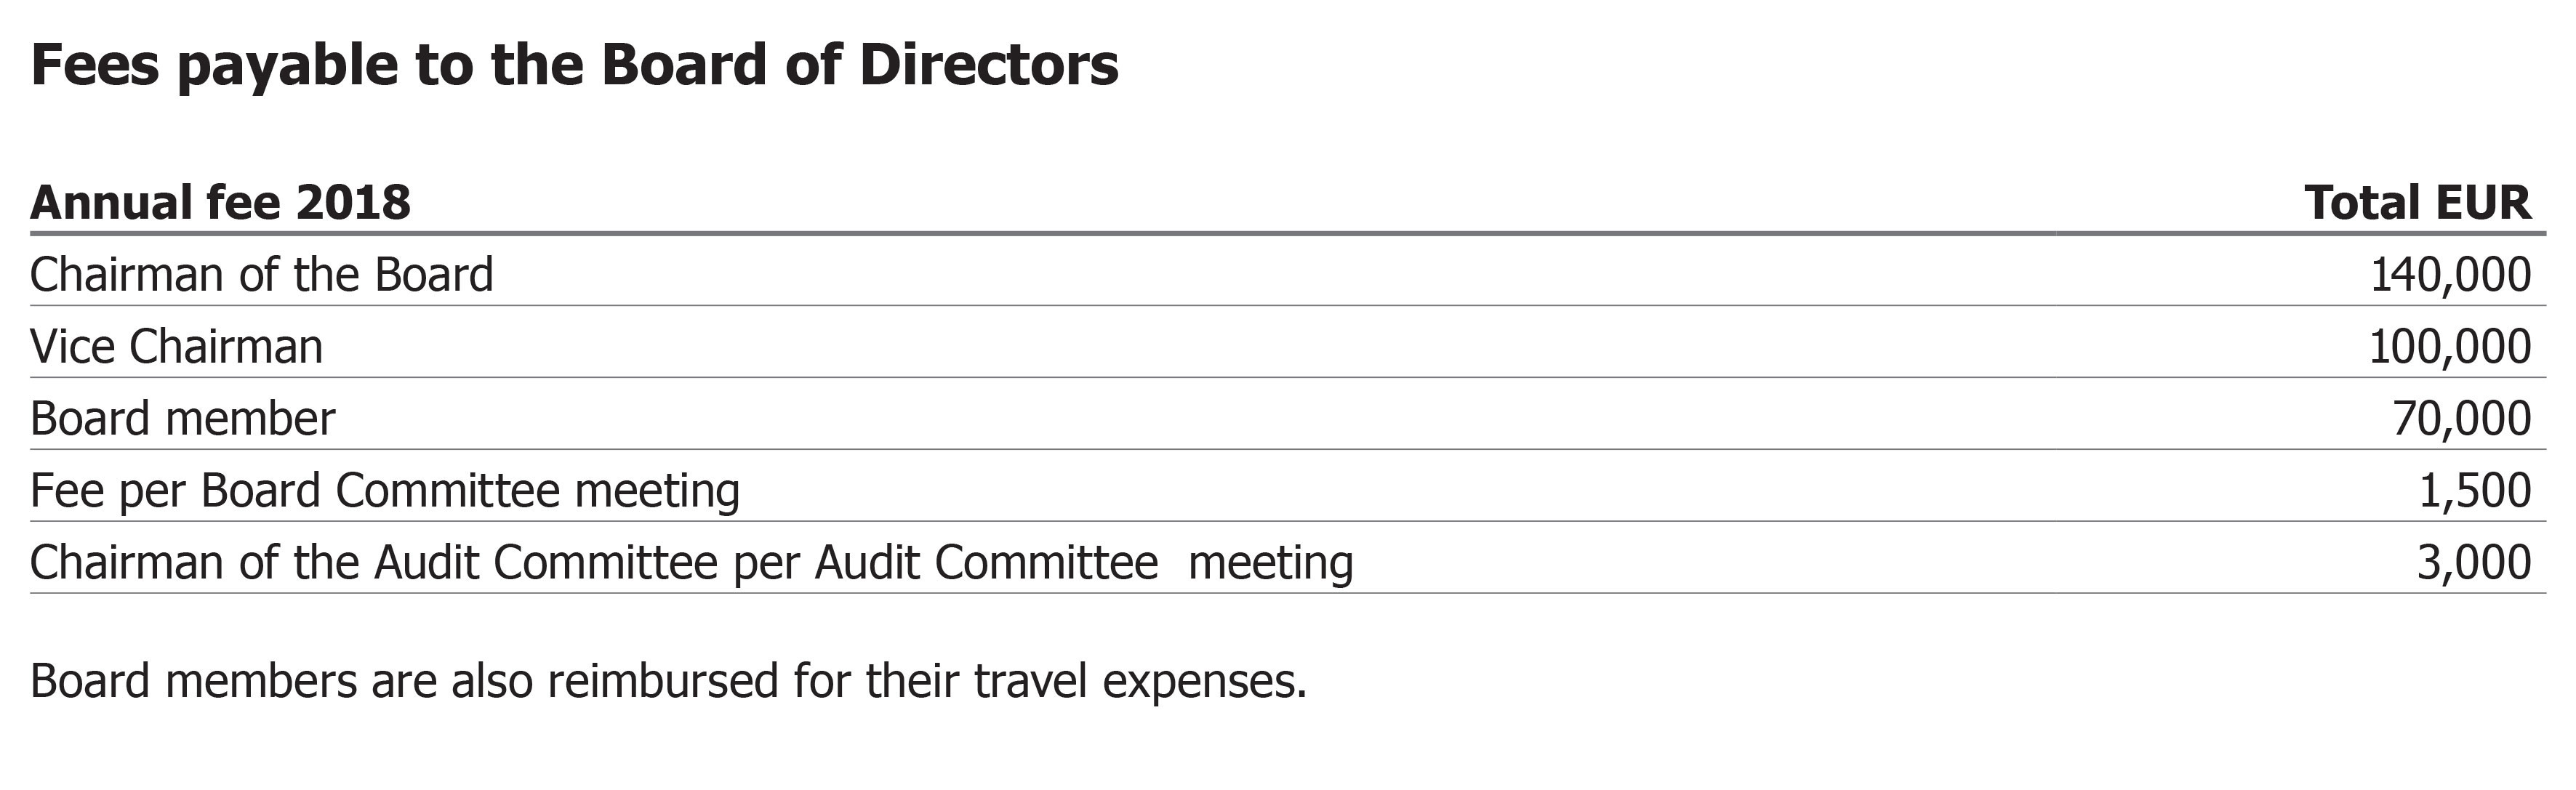 Fees payable to the board of directors